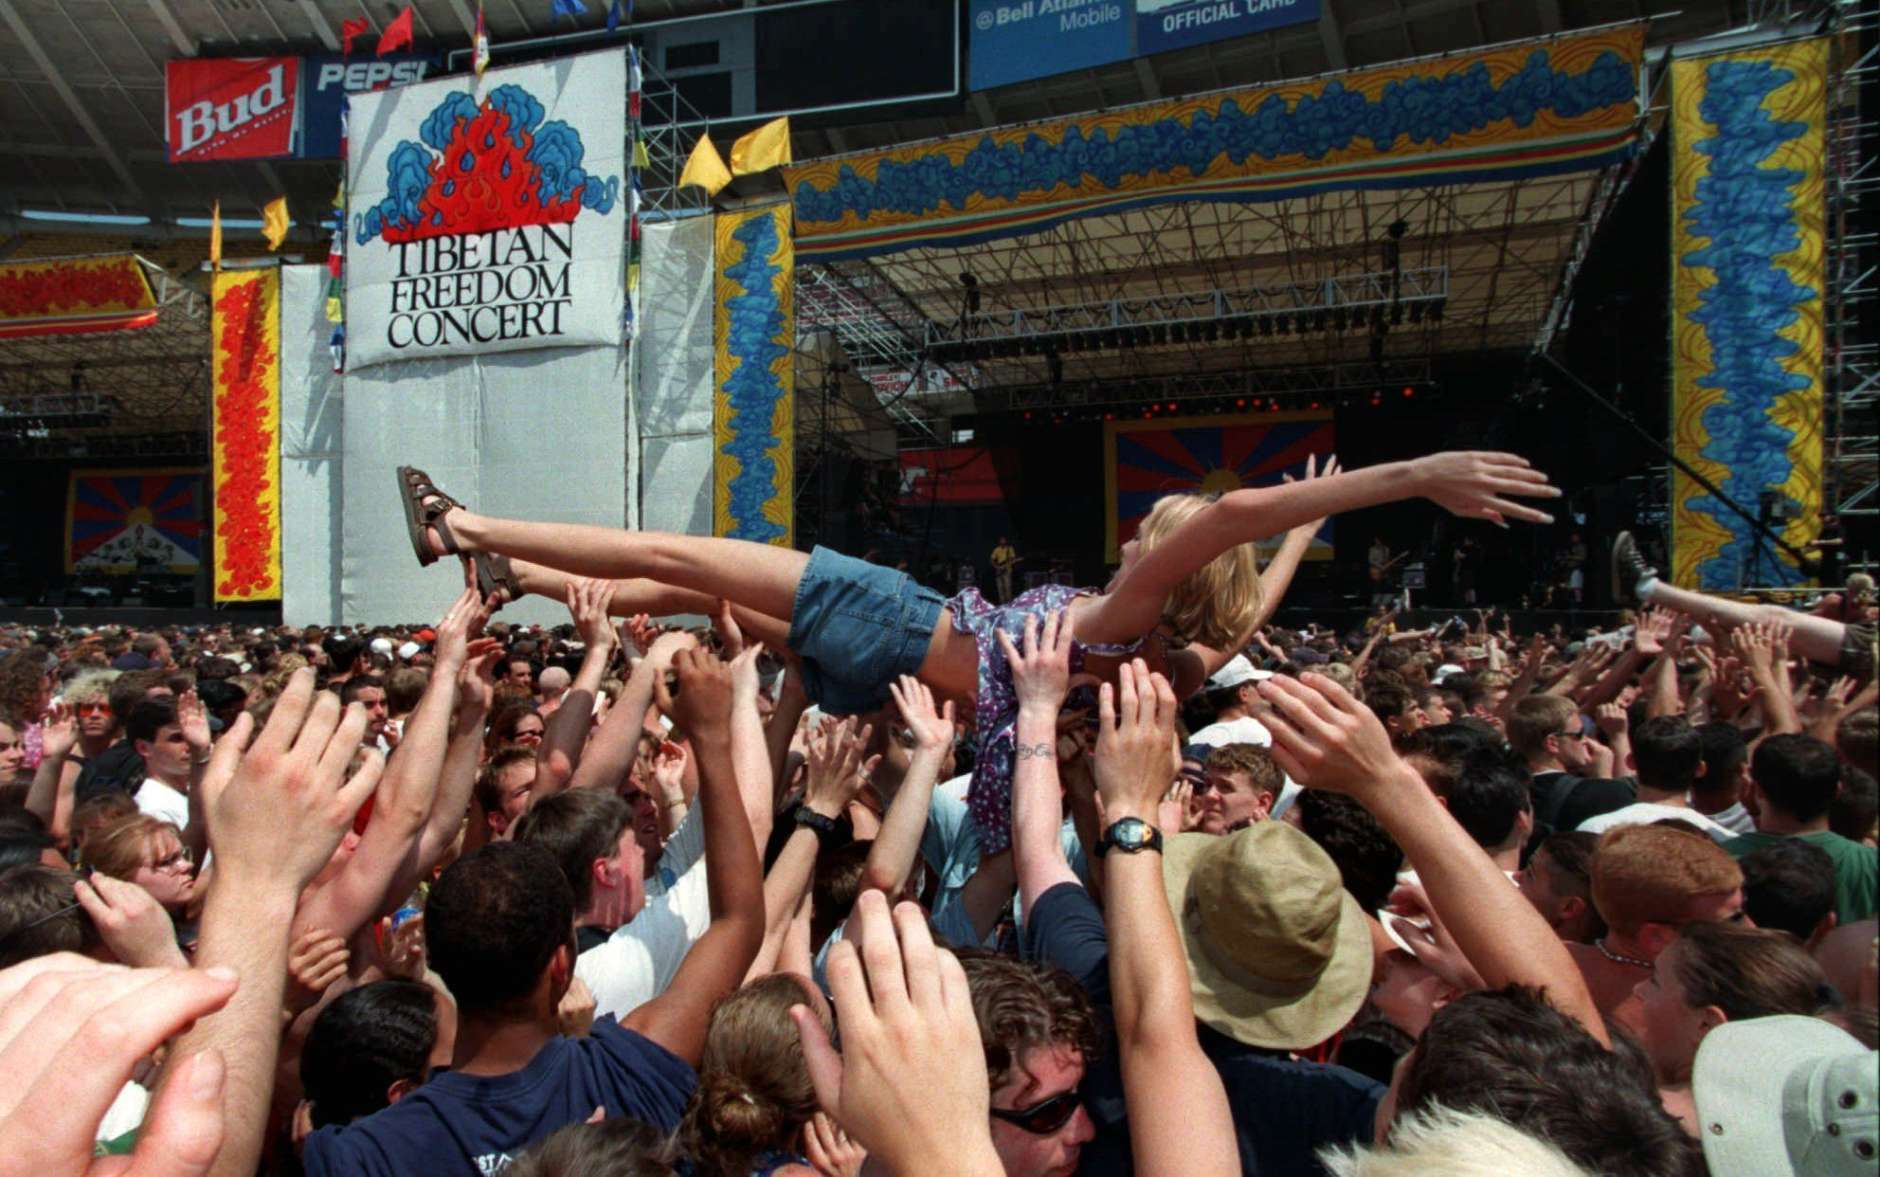 A girl body surfs across the crowd at RFK Stadium in Washington Sunday, June 14, 1998, during the second day of the Tibetan Freedom Festival.  The concert featuring some of the world's top rock bands performed to advocate freedom for Tibet.  (AP Photo/Ken Cedeno)